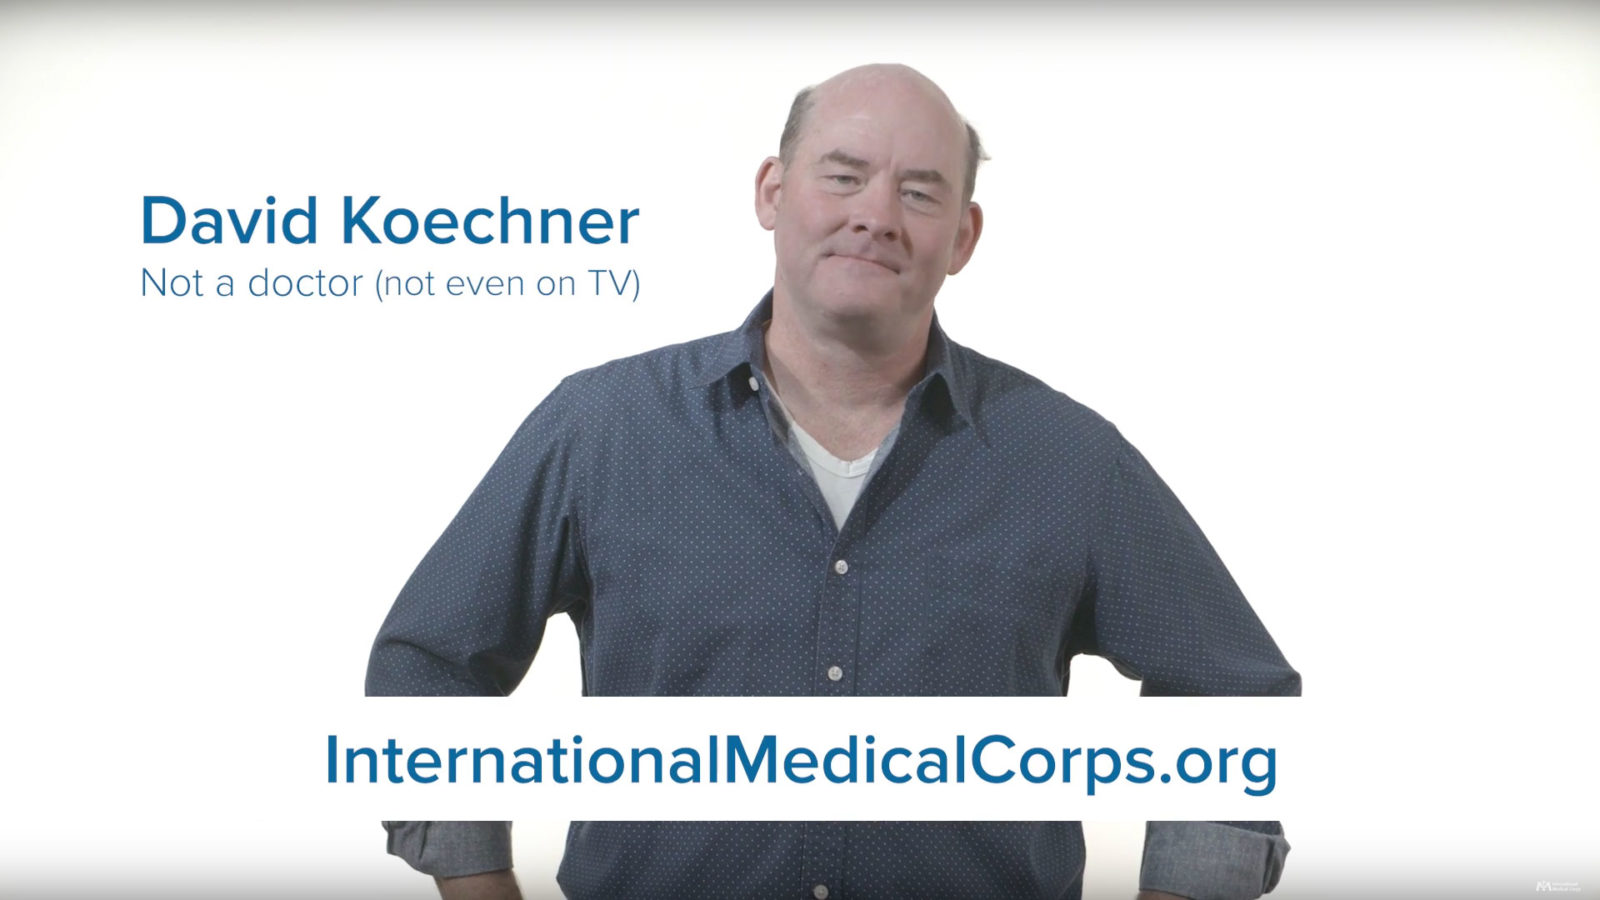 David Koechner for International Medical Corps